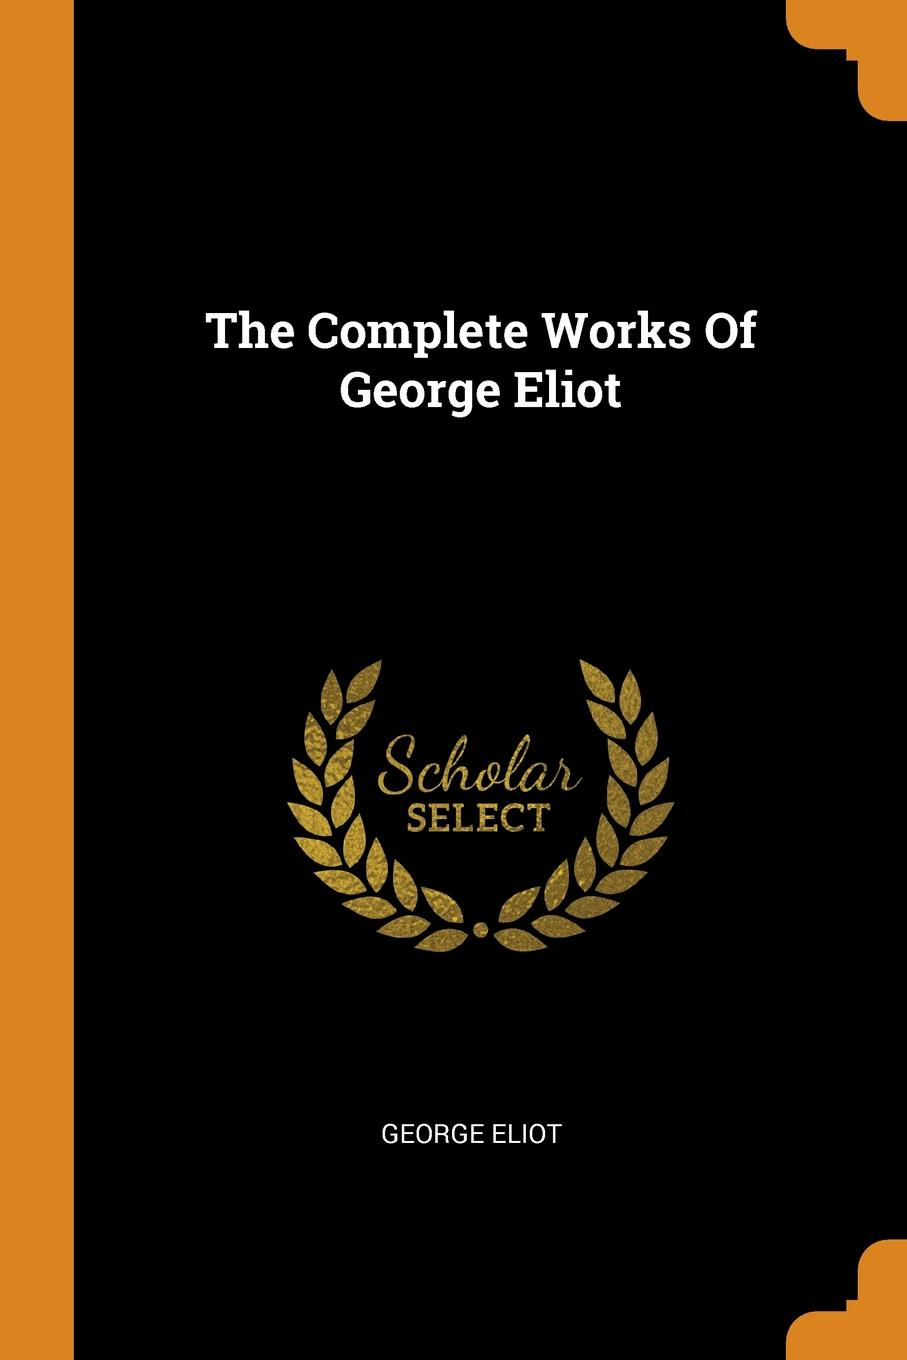 George Eliot The Complete Works Of George Eliot journeys in the selected novels of oyono ngugi and george eliot